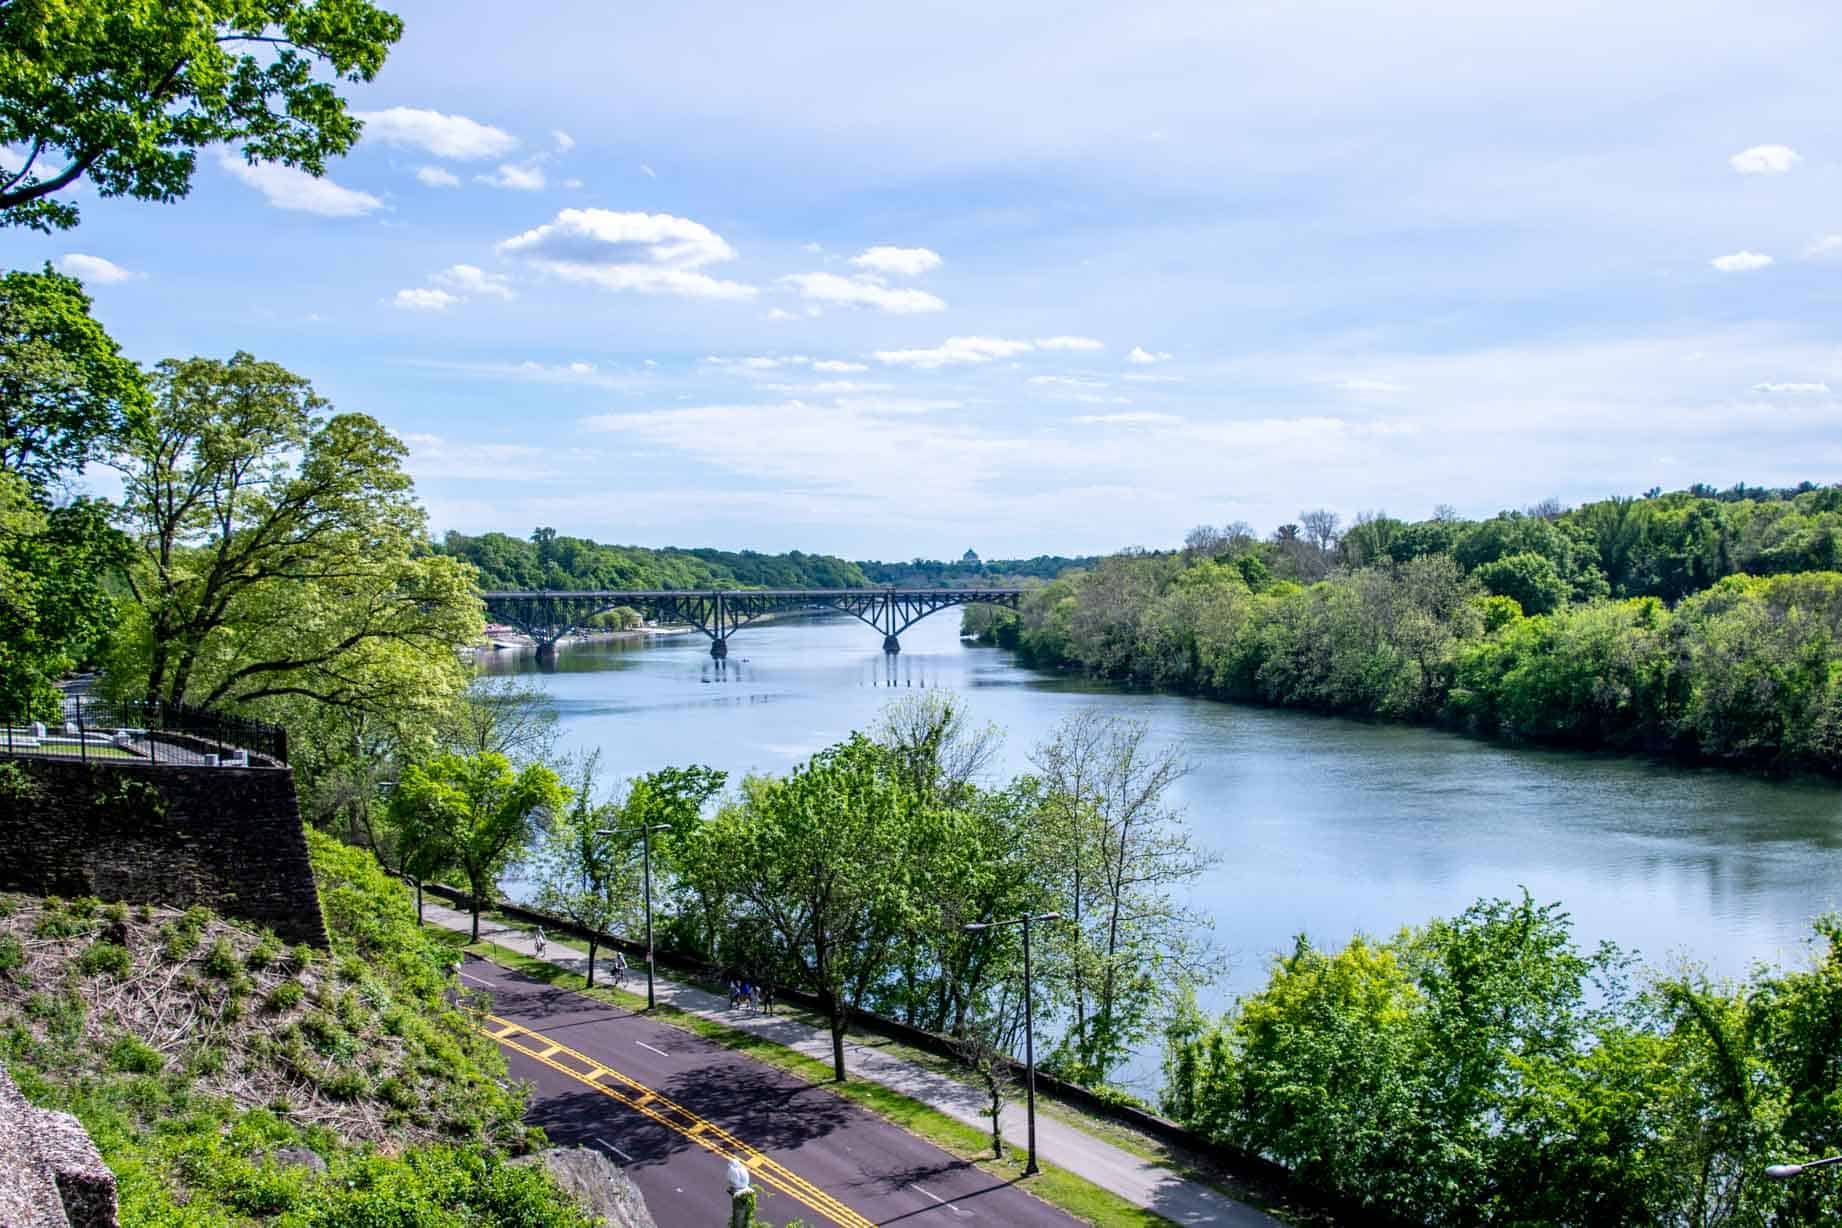 Overhead view of the Schuylkill River crossed by a bridge in the distance